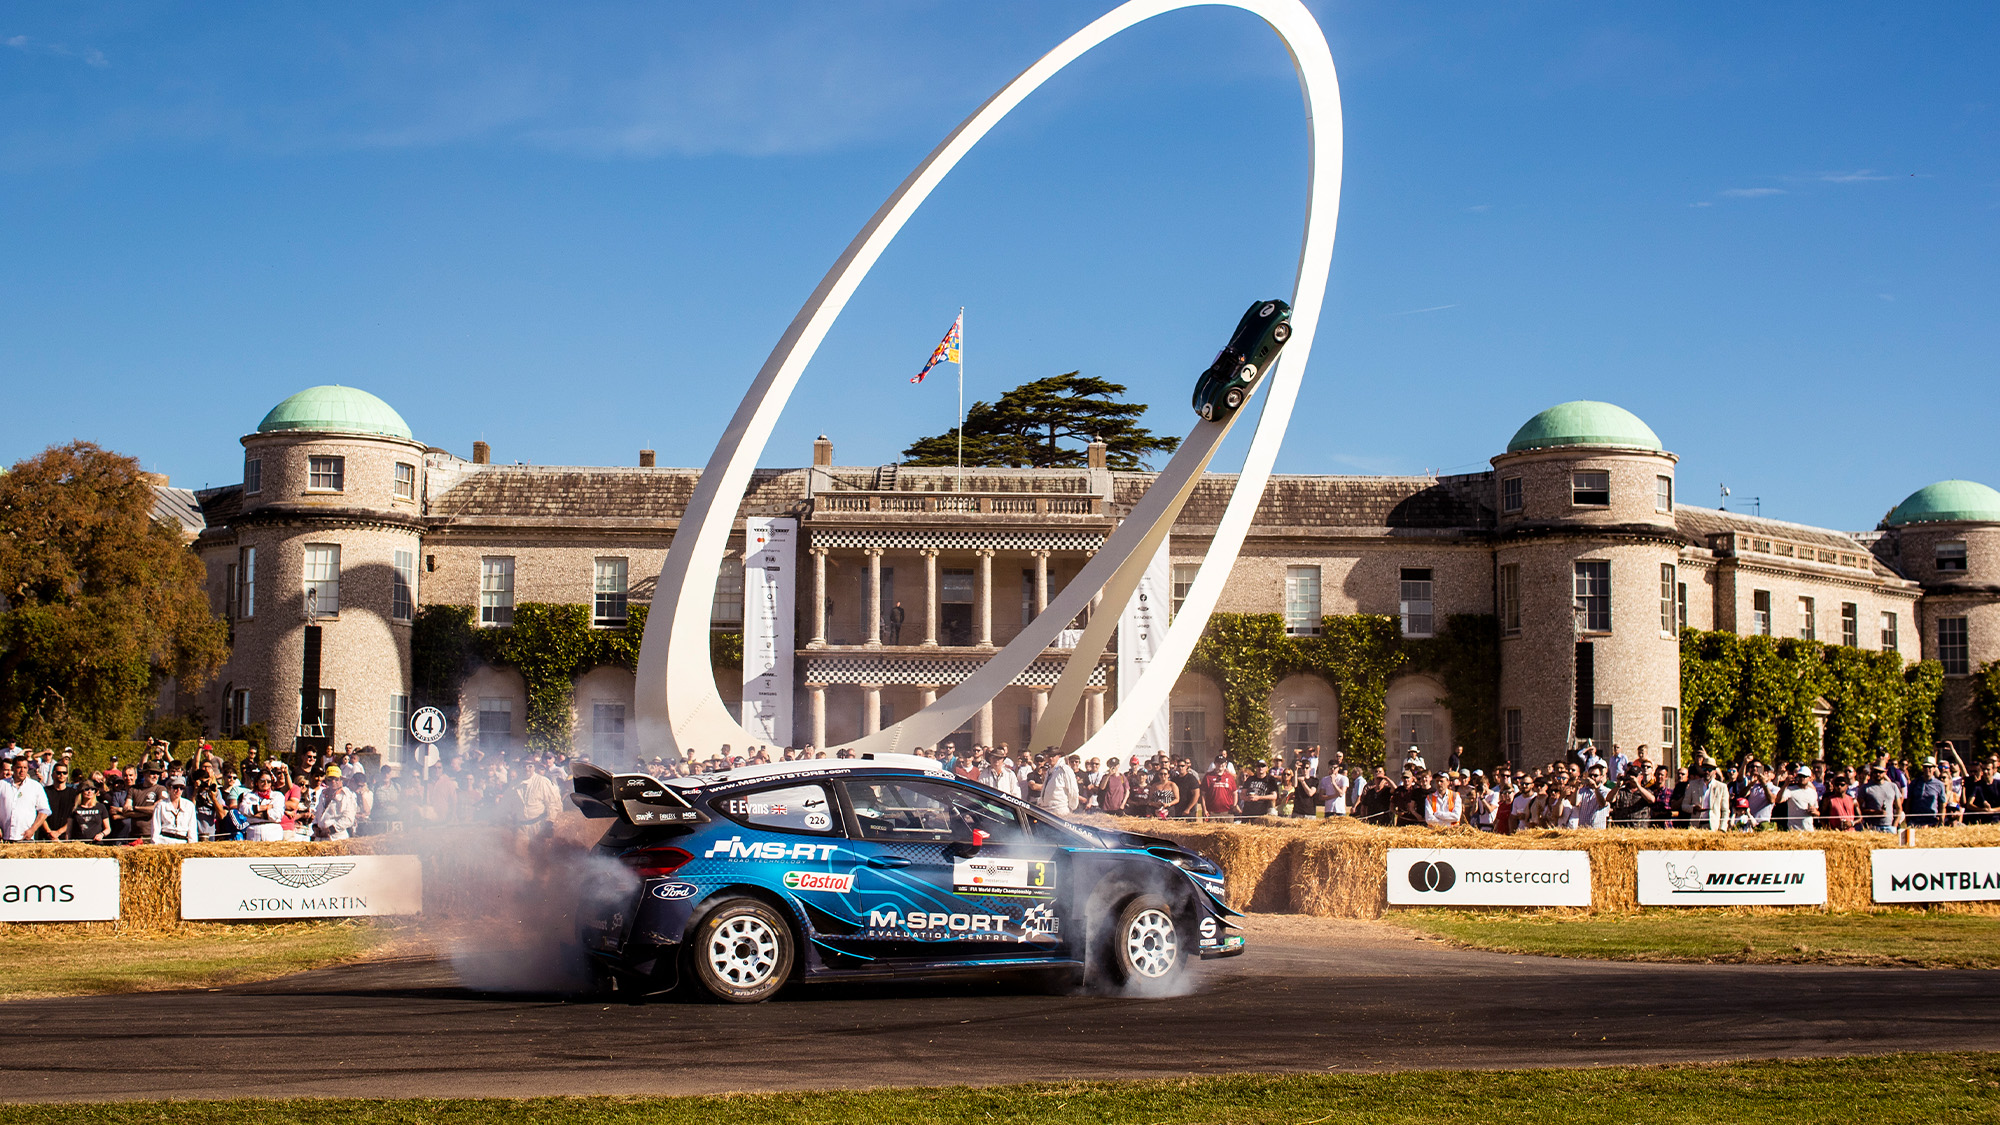 Goodwood Festival of Speed burnout